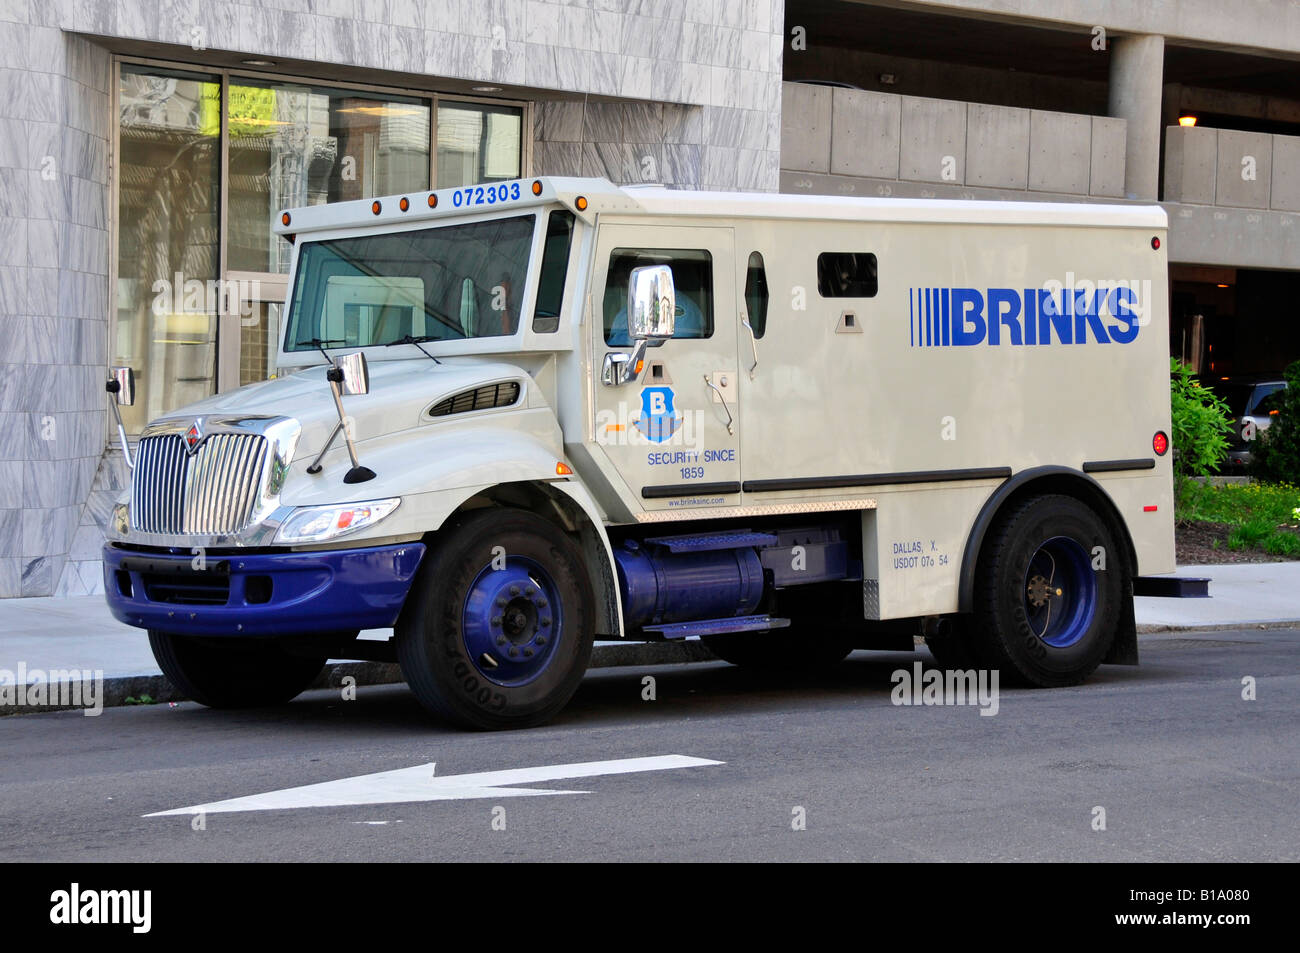 Brinks armored security truck